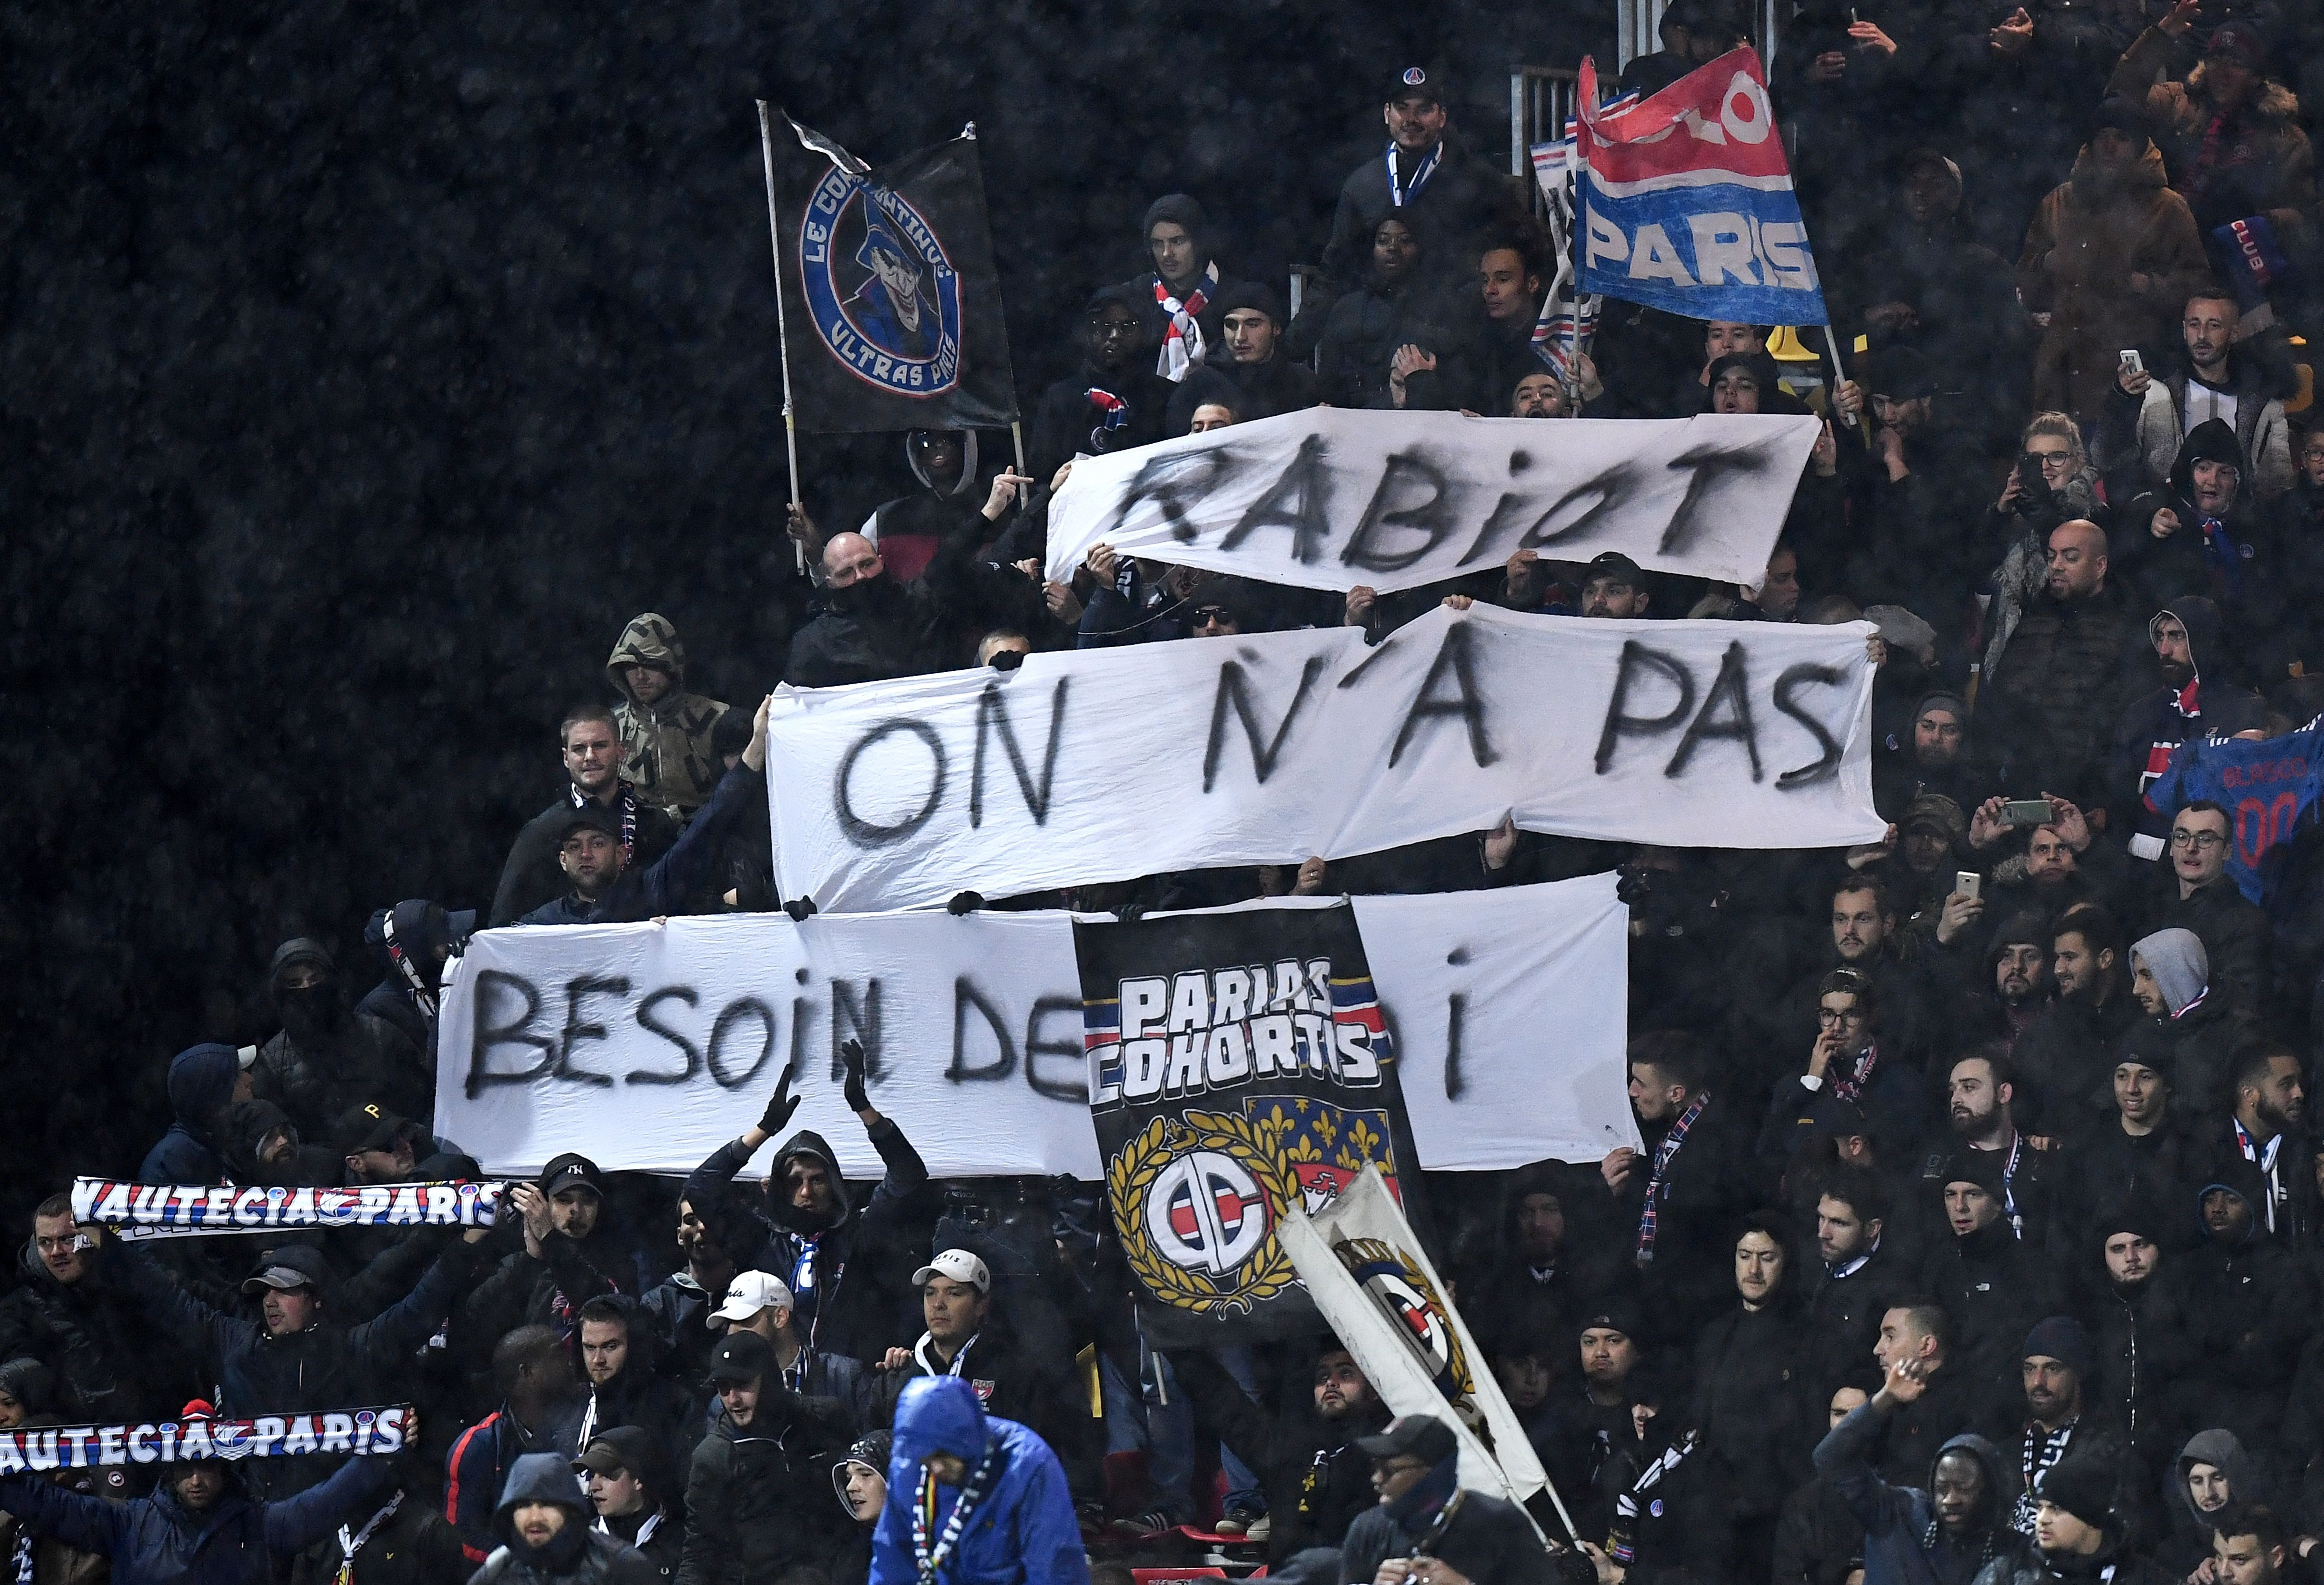 """Rabiot, we don't need you"" - Rabiot made an acrimonious exit from PSG. (Photo by Franck Fife/AFP/Getty Images)"